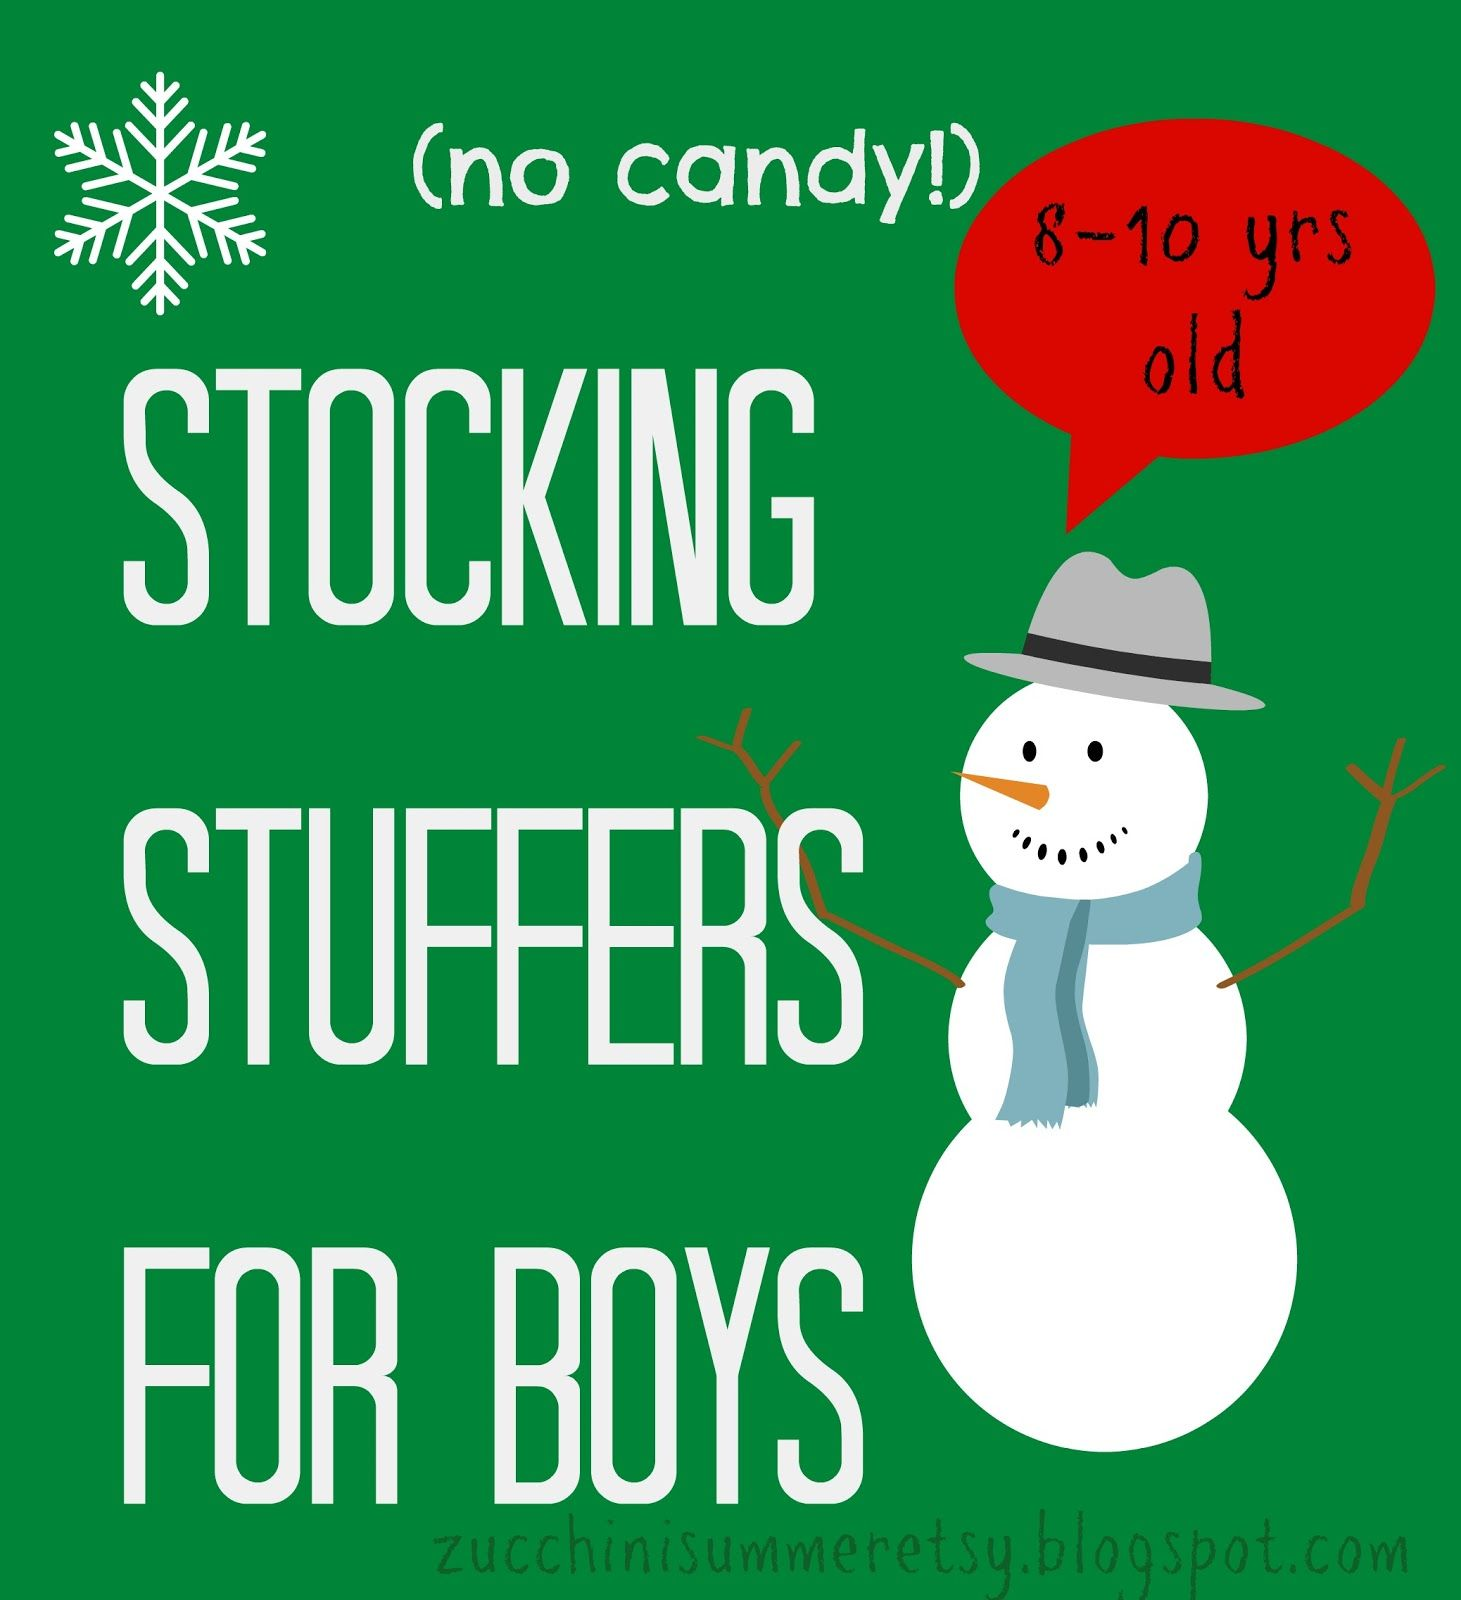 stocking stuffers tween stocking stuffers boy stocking stuffers